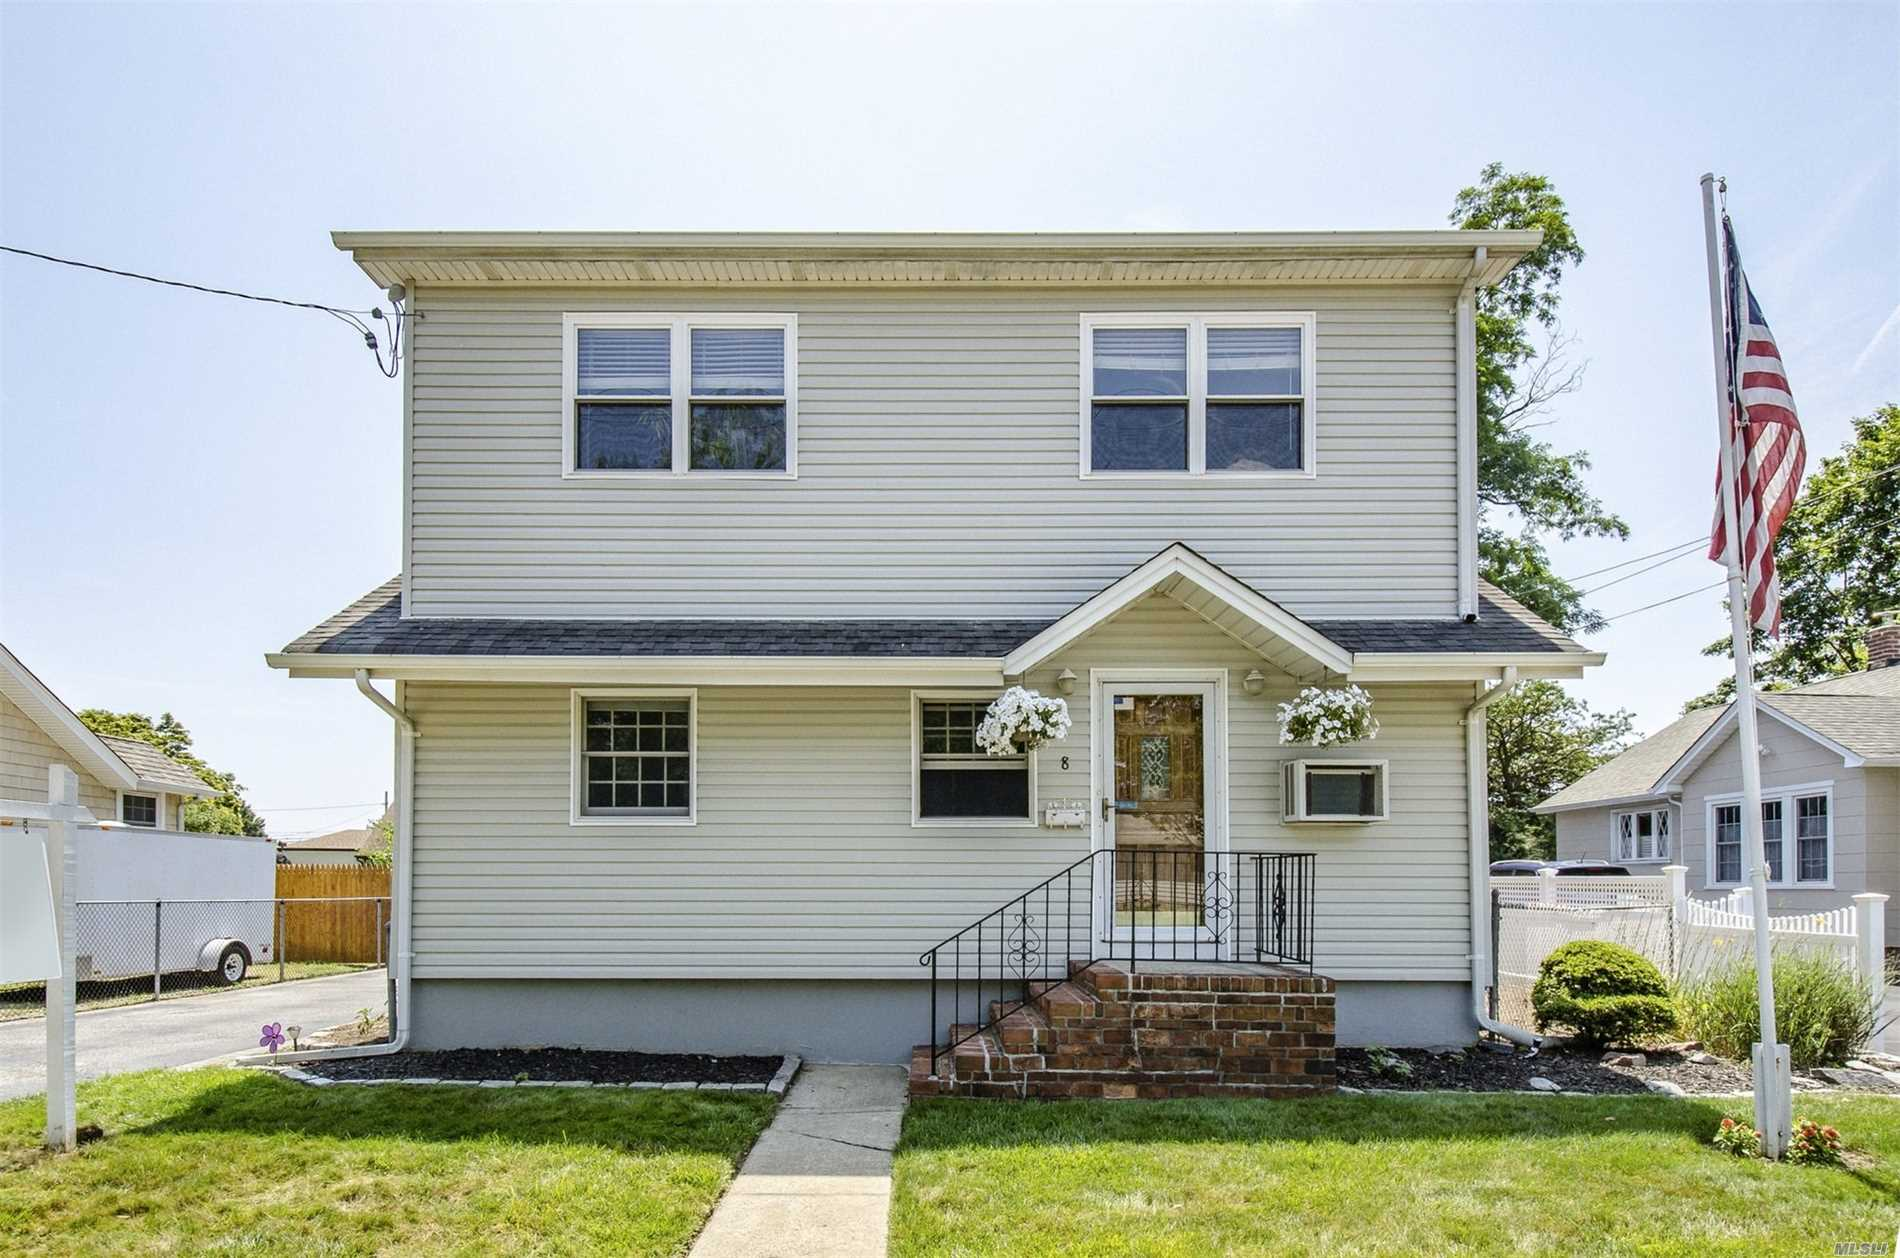 Photo of home for sale at 8 Walnut Ave, Farmingdale NY